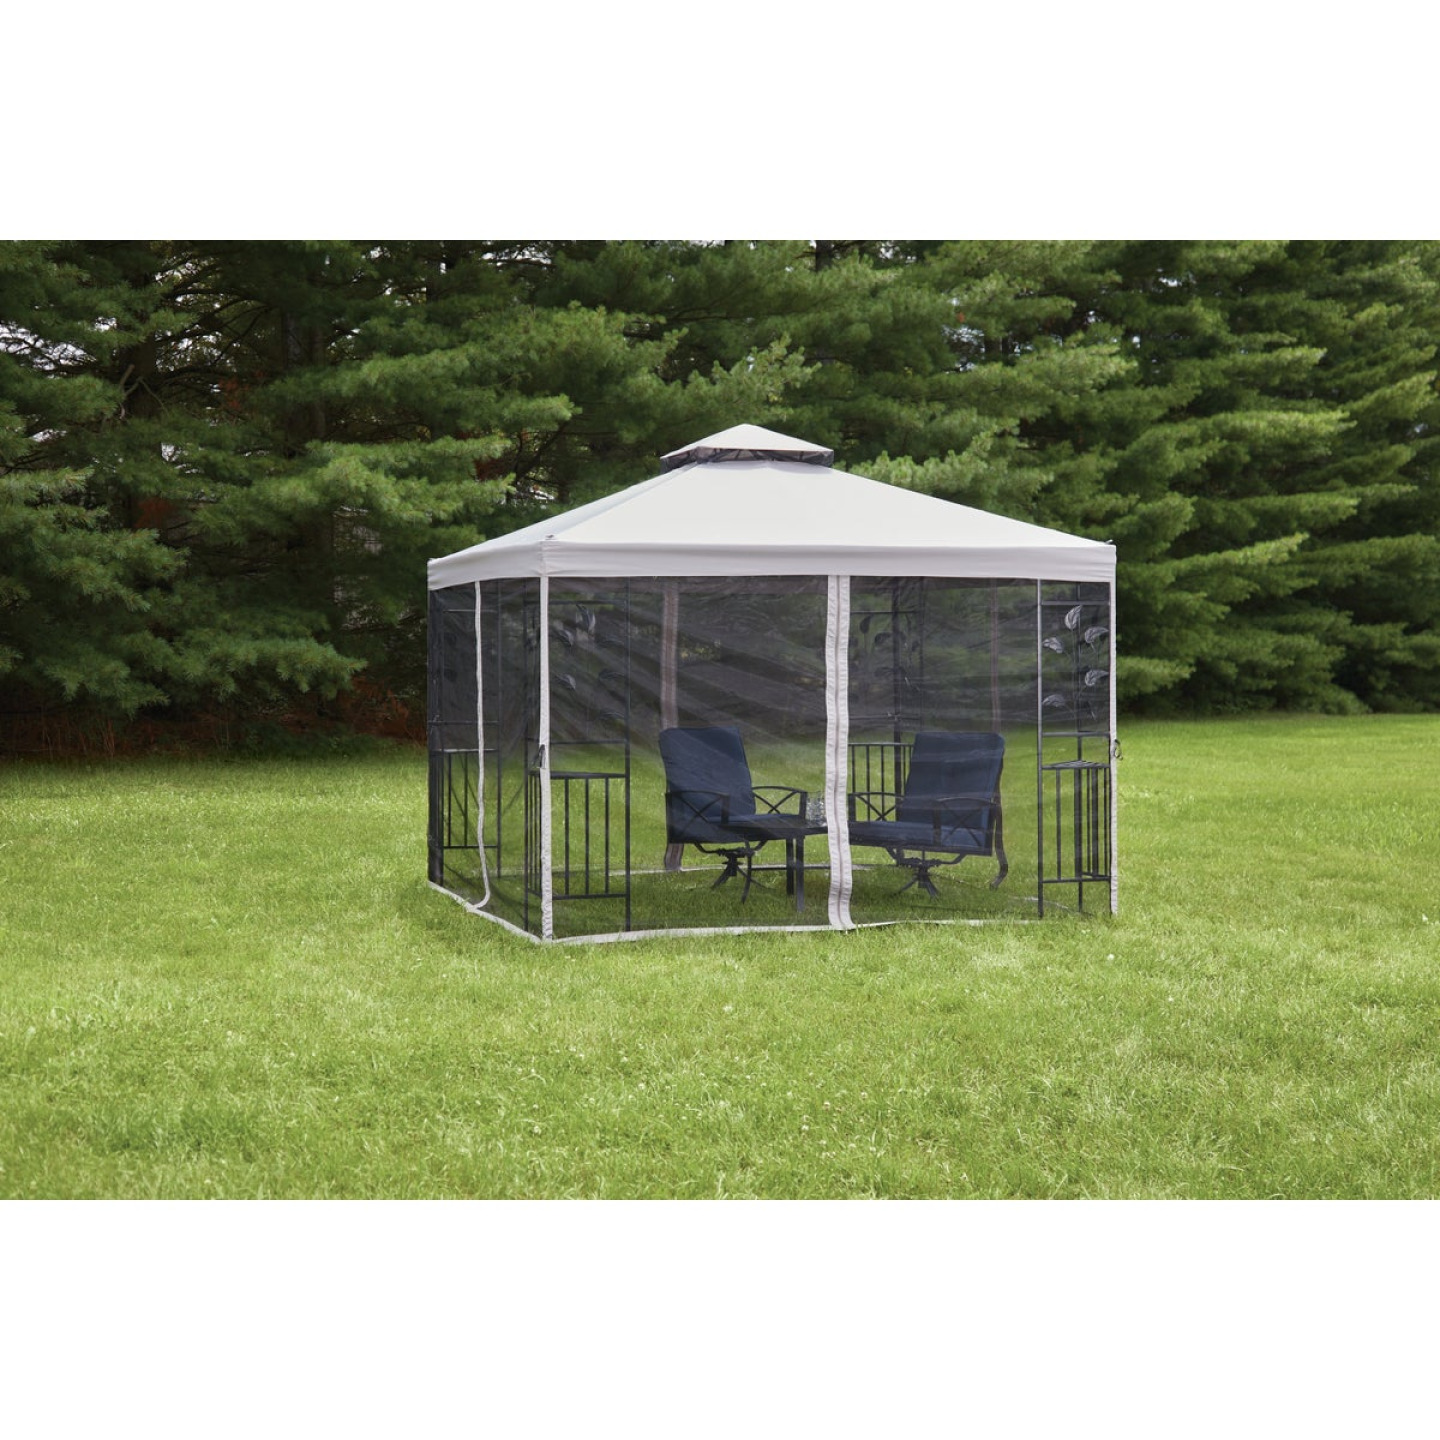 Outdoor Expressions 12 Ft. x 12 Ft. Gray & Black Steel Gazebo with Sides Image 2